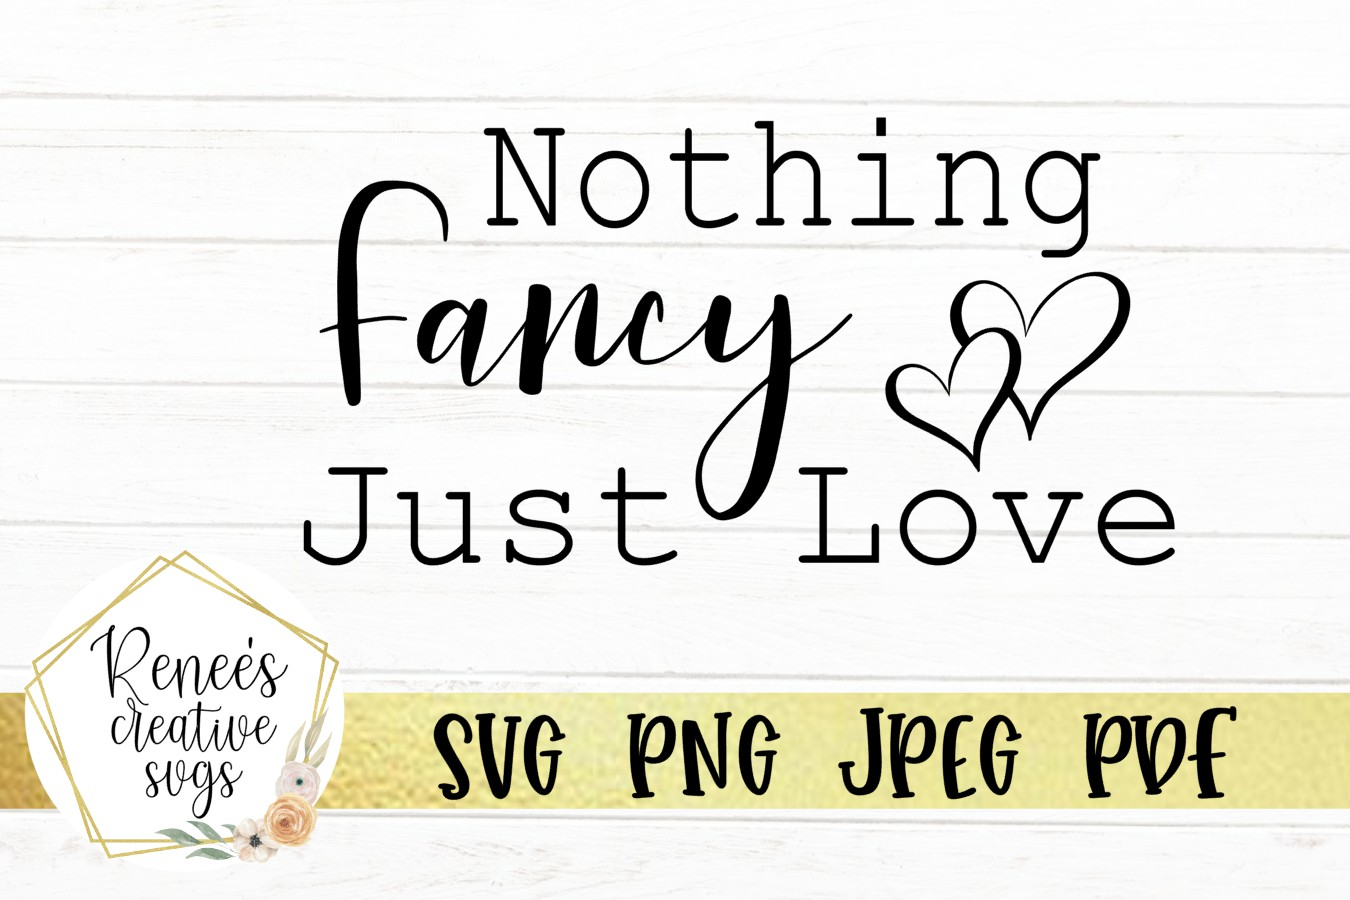 Nothing Fancy, Just Love|Wedding Quotes | SVG Cut File example image 2